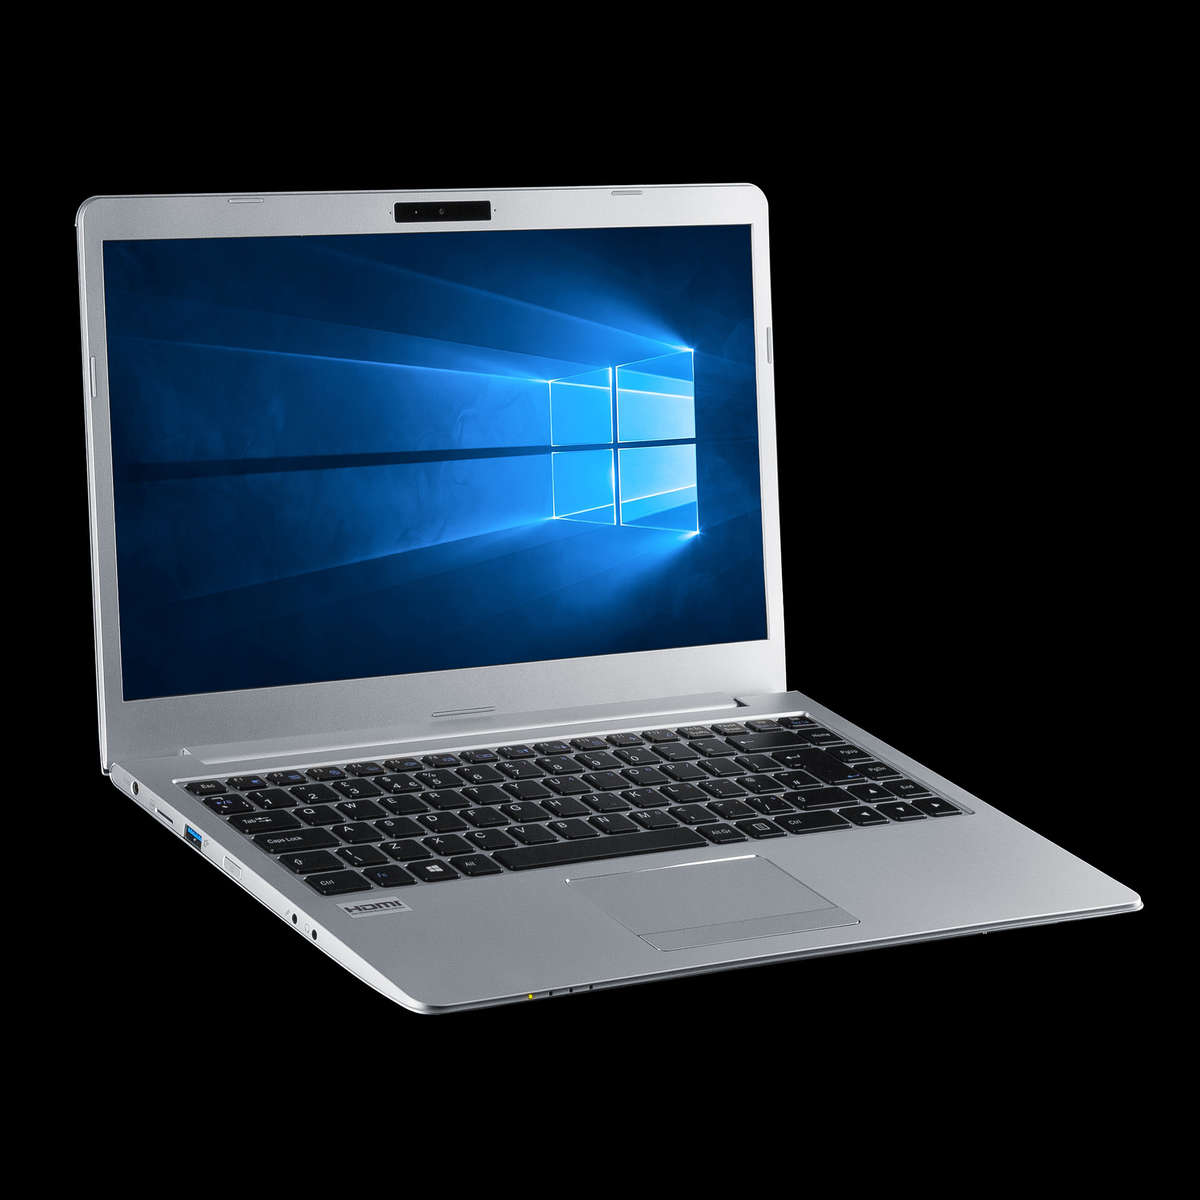 "Chillblast Helios 4 i7 8550U 14"" Ultrabook (PC Pro Edition) - PRE-ORDER"